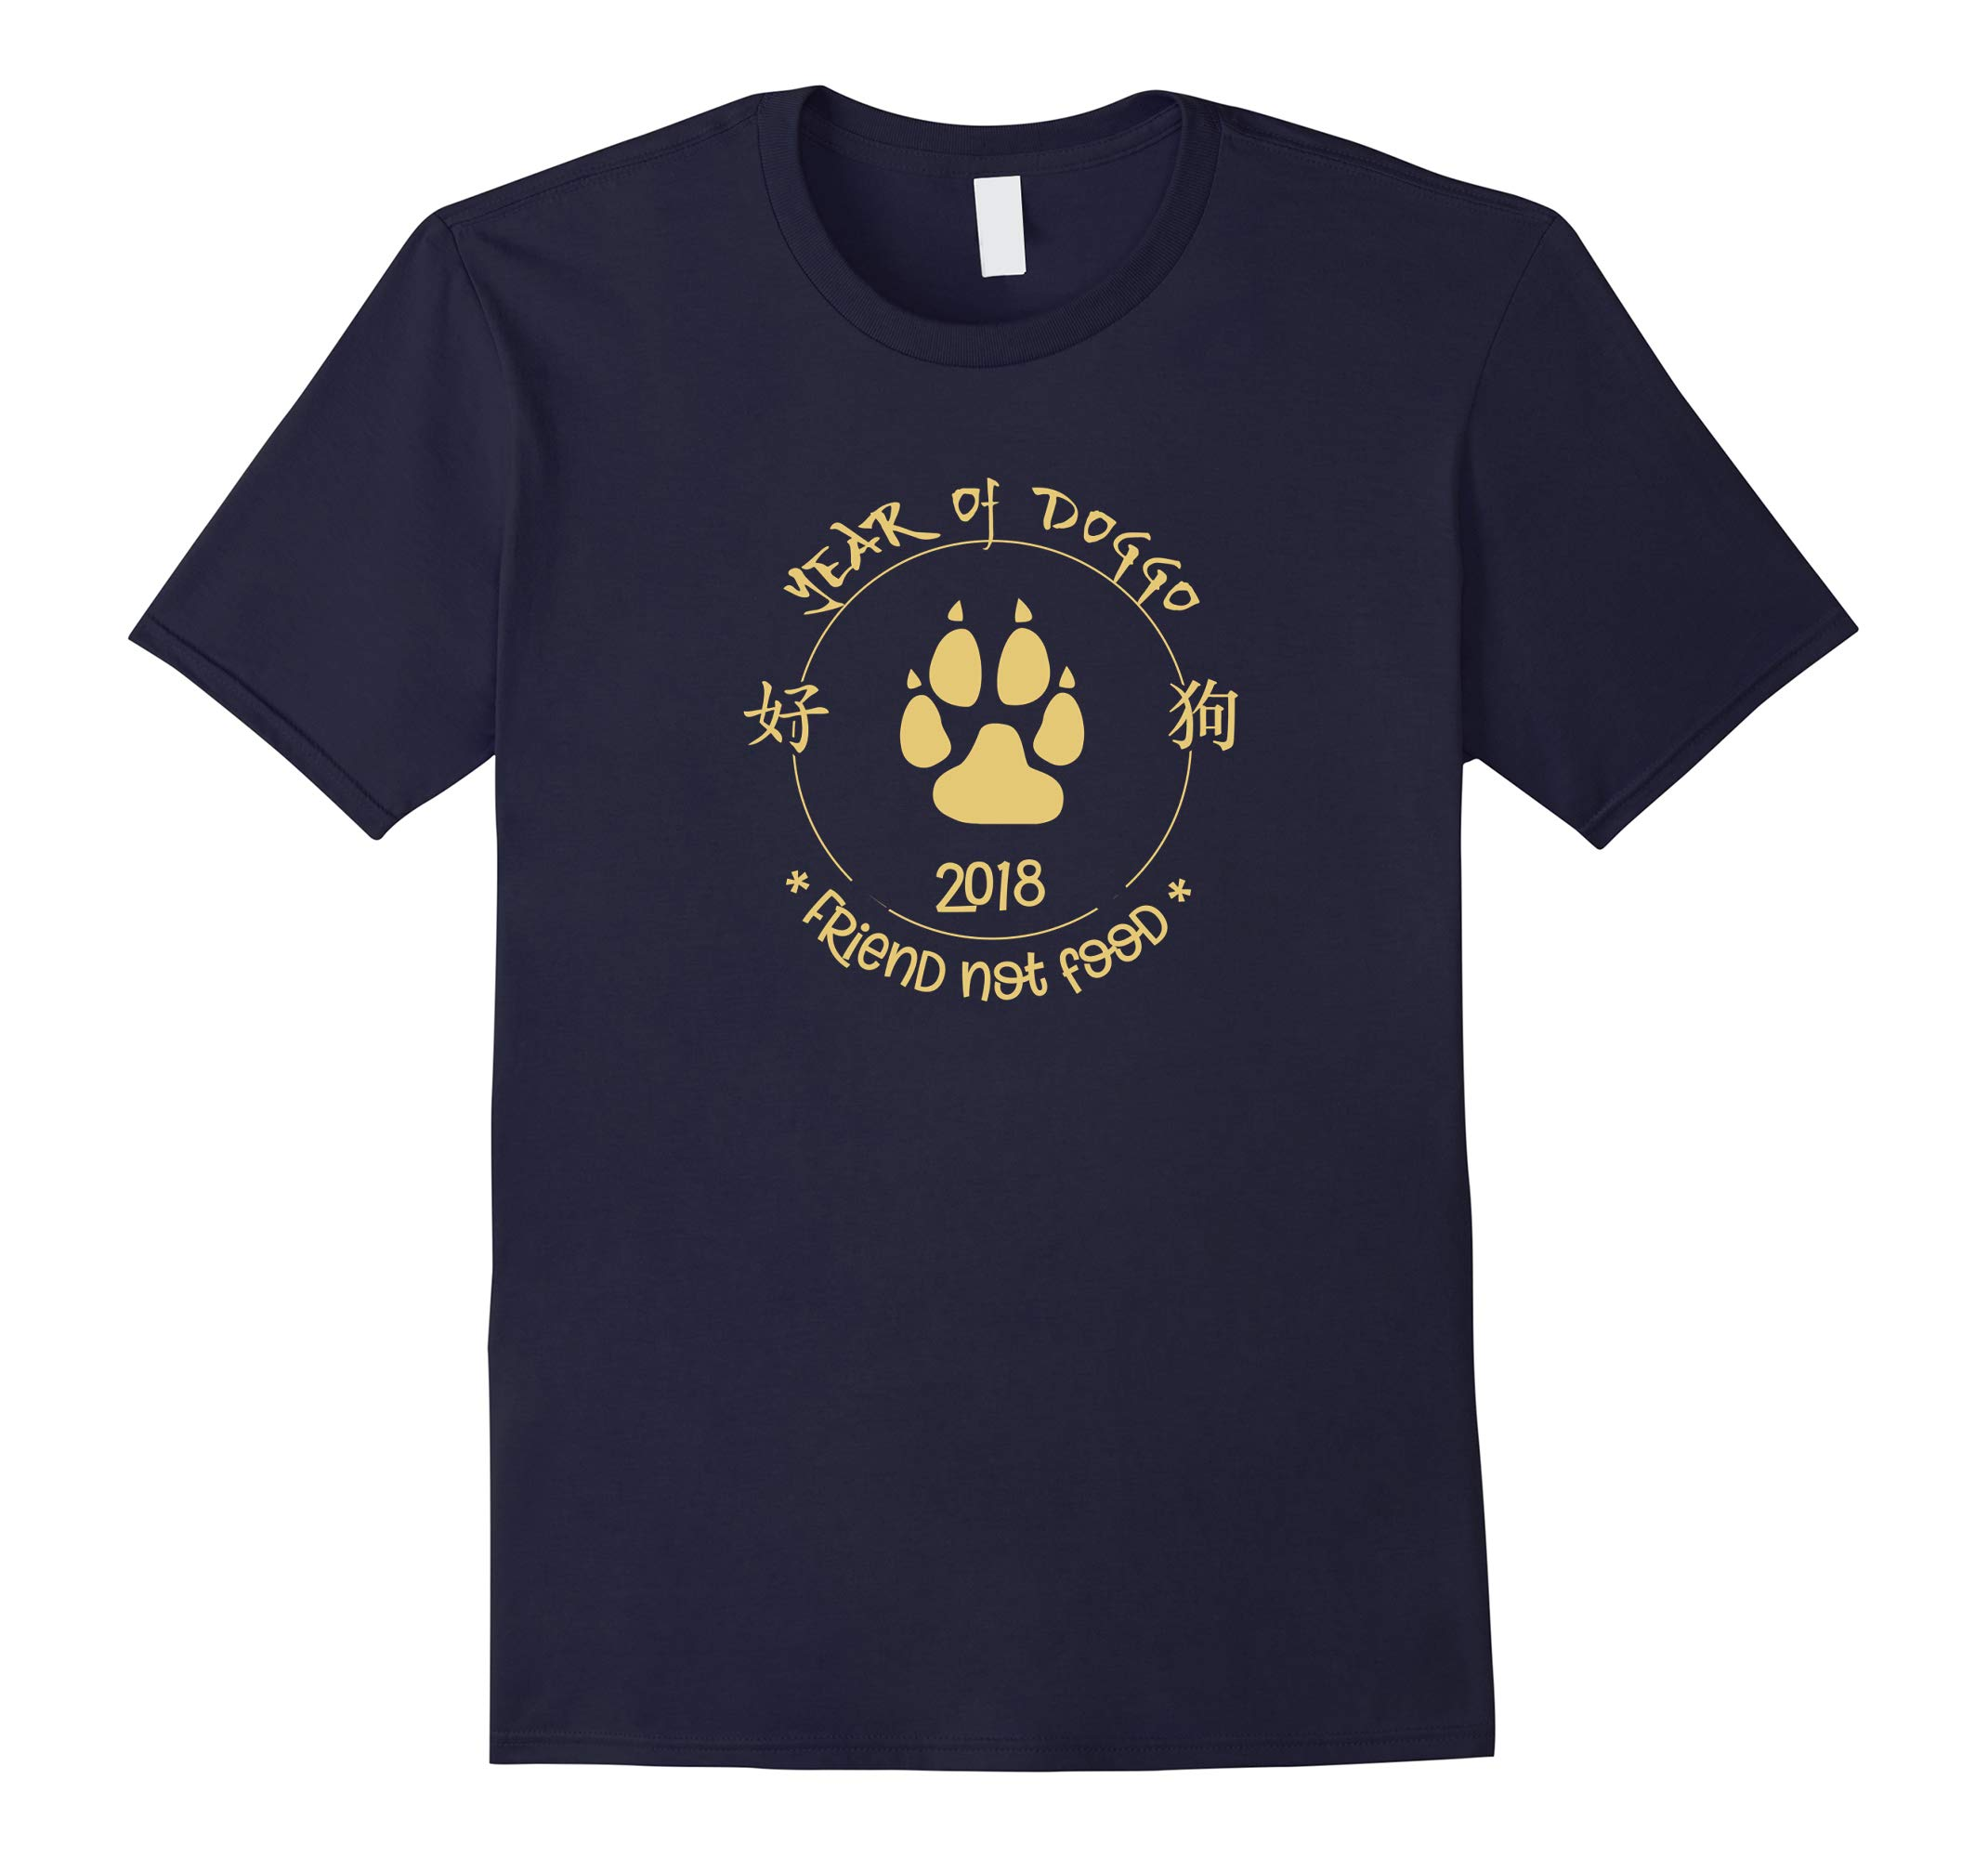 Year of Doggo T-Shirt by Lunar Dog-RT